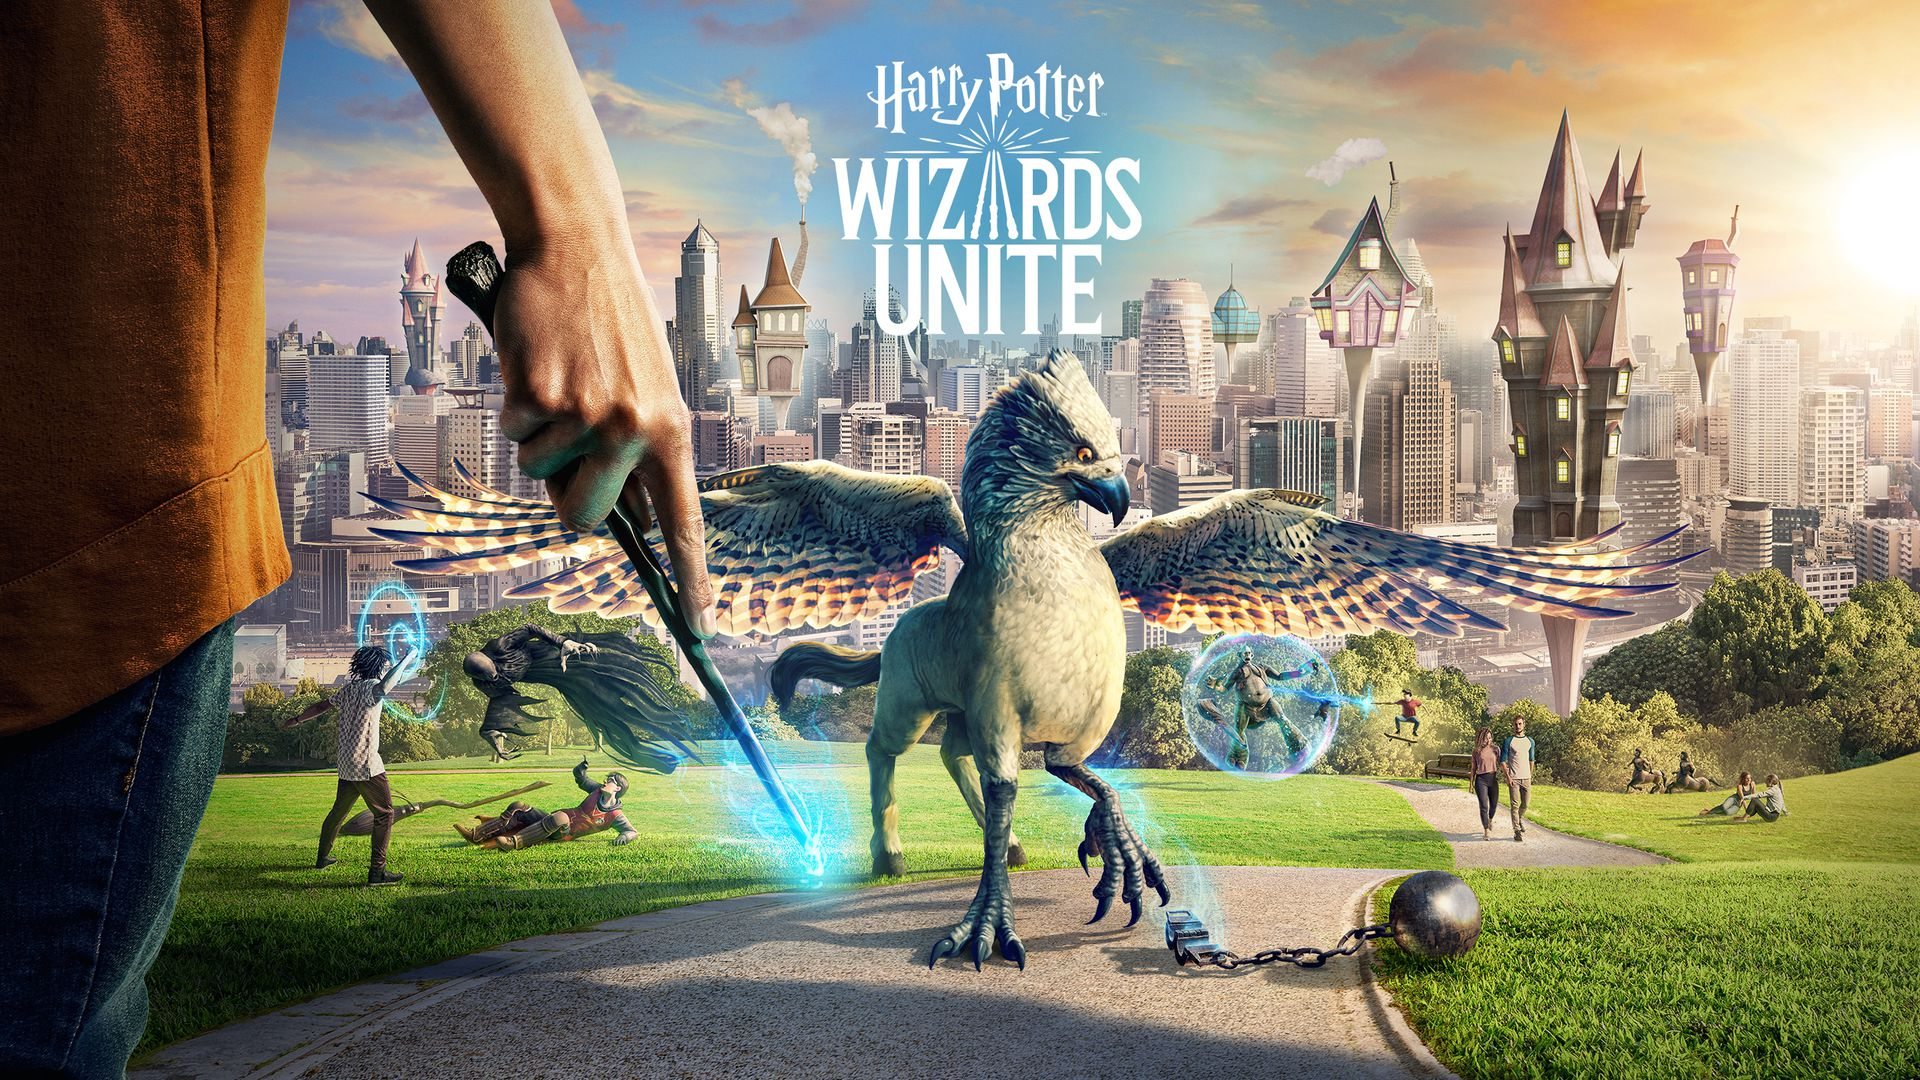 A promotional image for Harry Potter: Wizards Unite showing some characters and images from the game